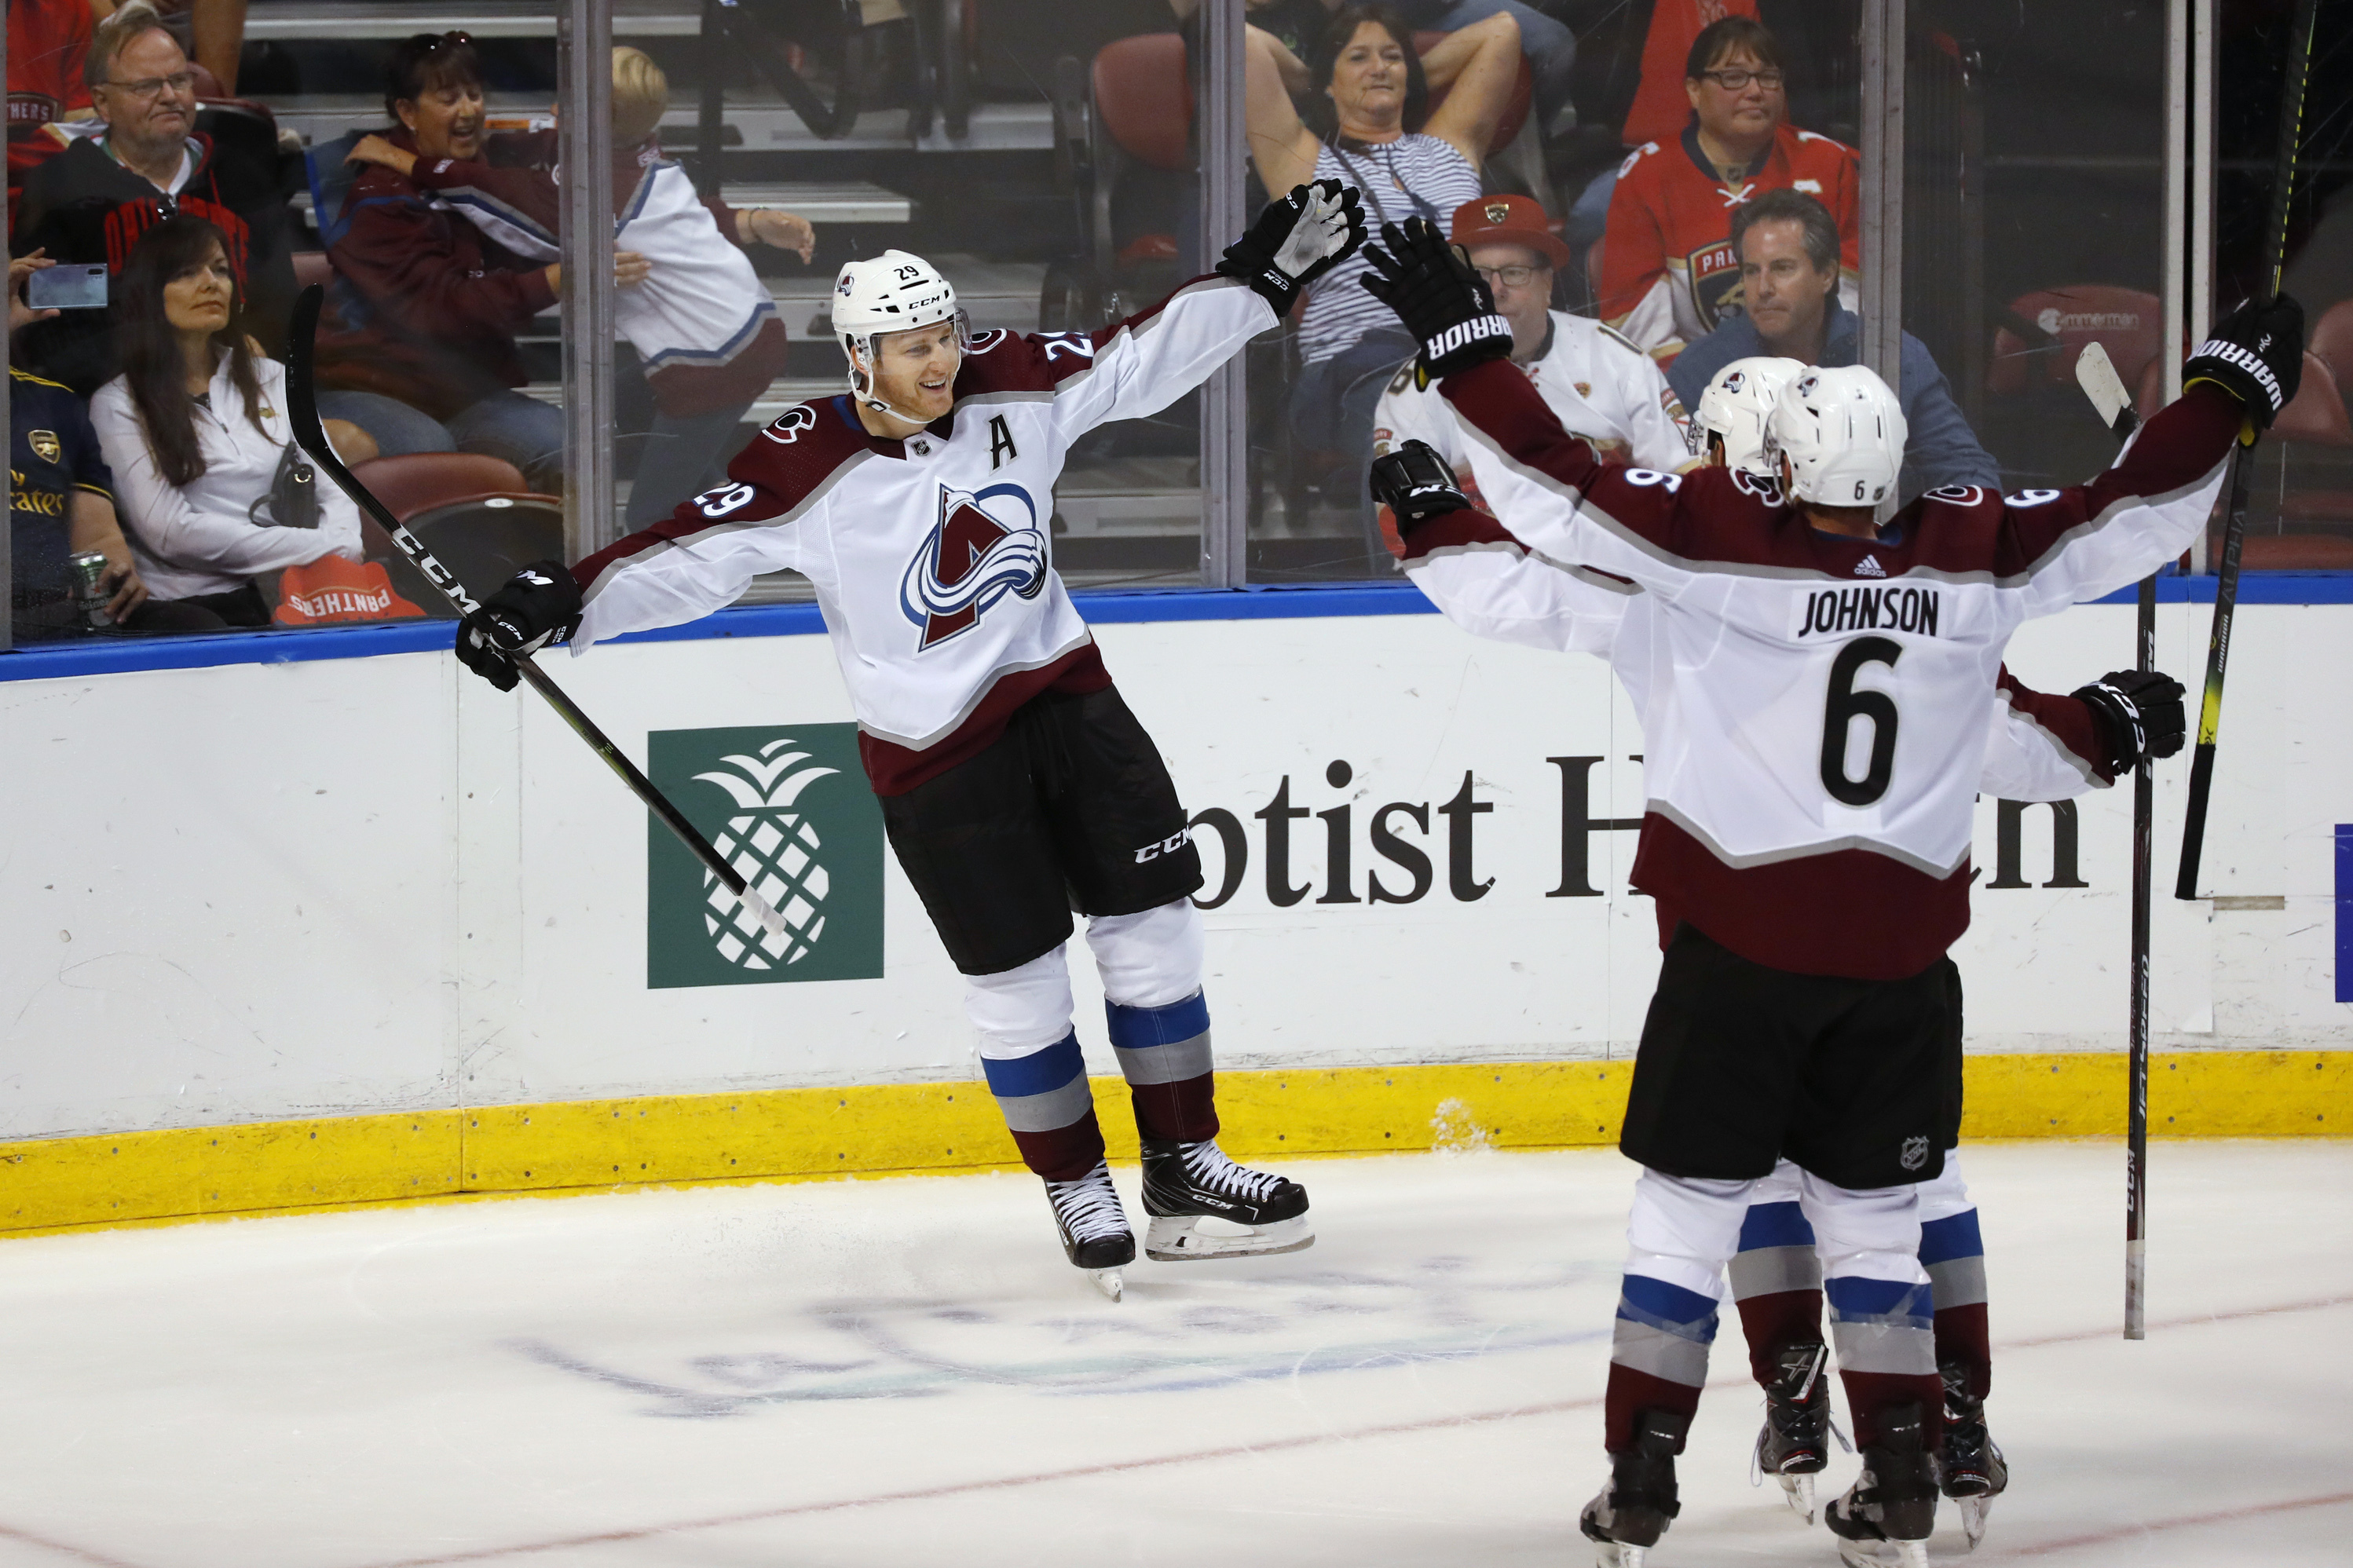 Nathan MacKinnon scores in OT, Avalanche beat Panthers 5-4